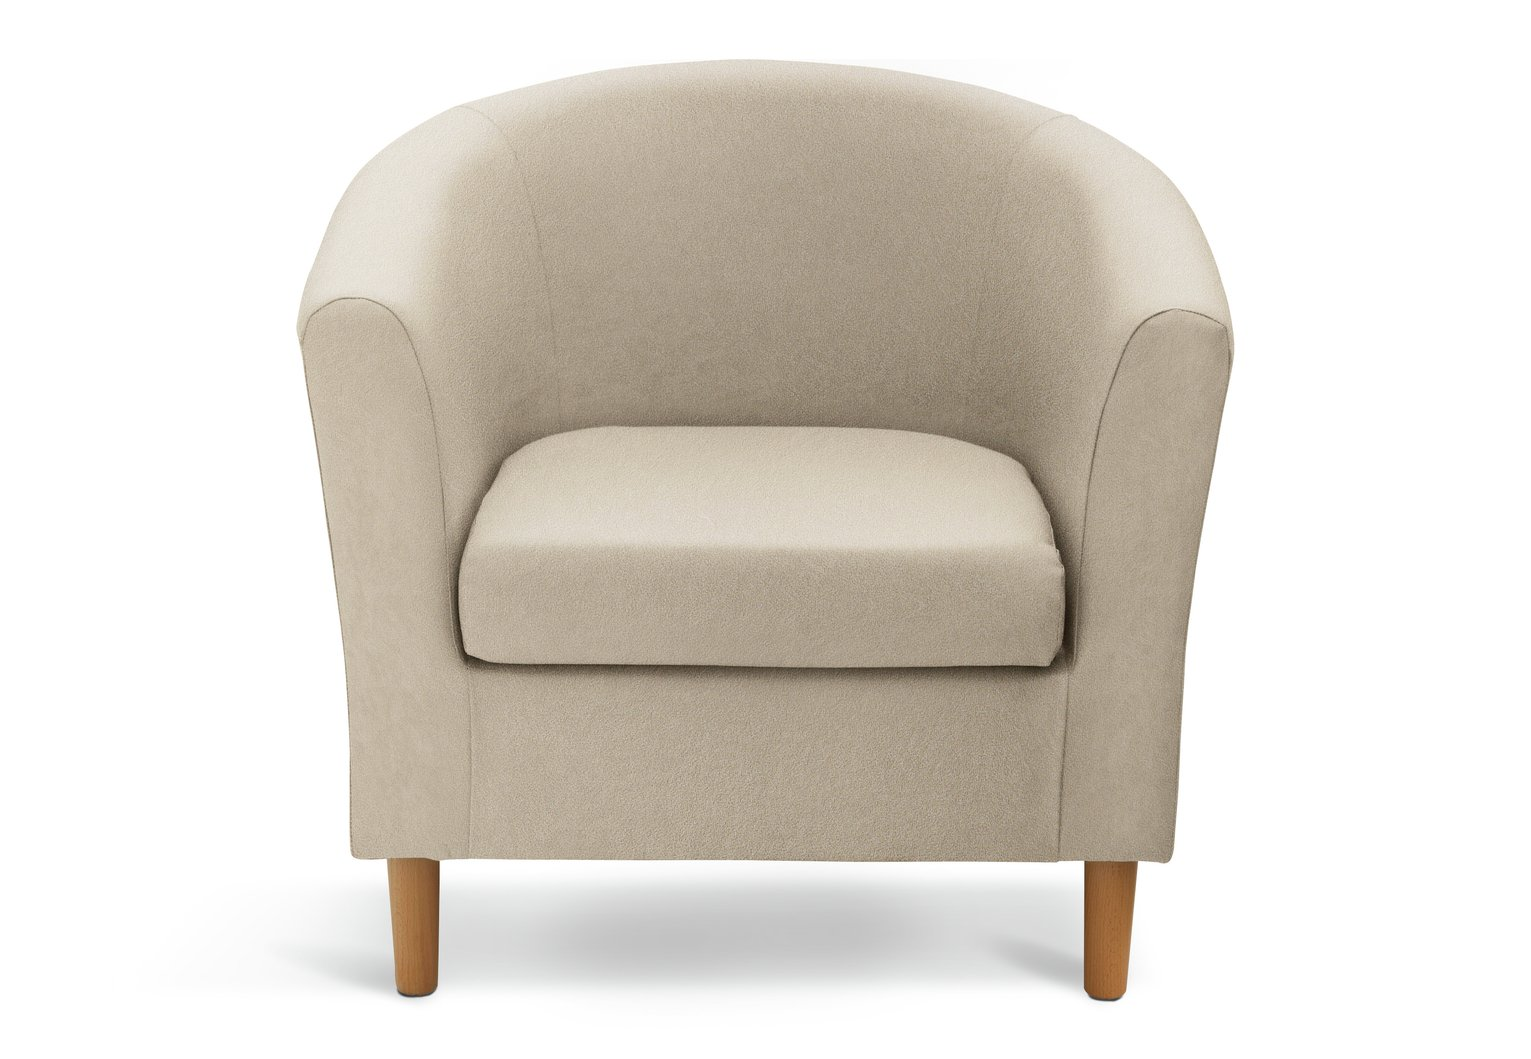 Argos Home Fabric Tub Chair - Mocha